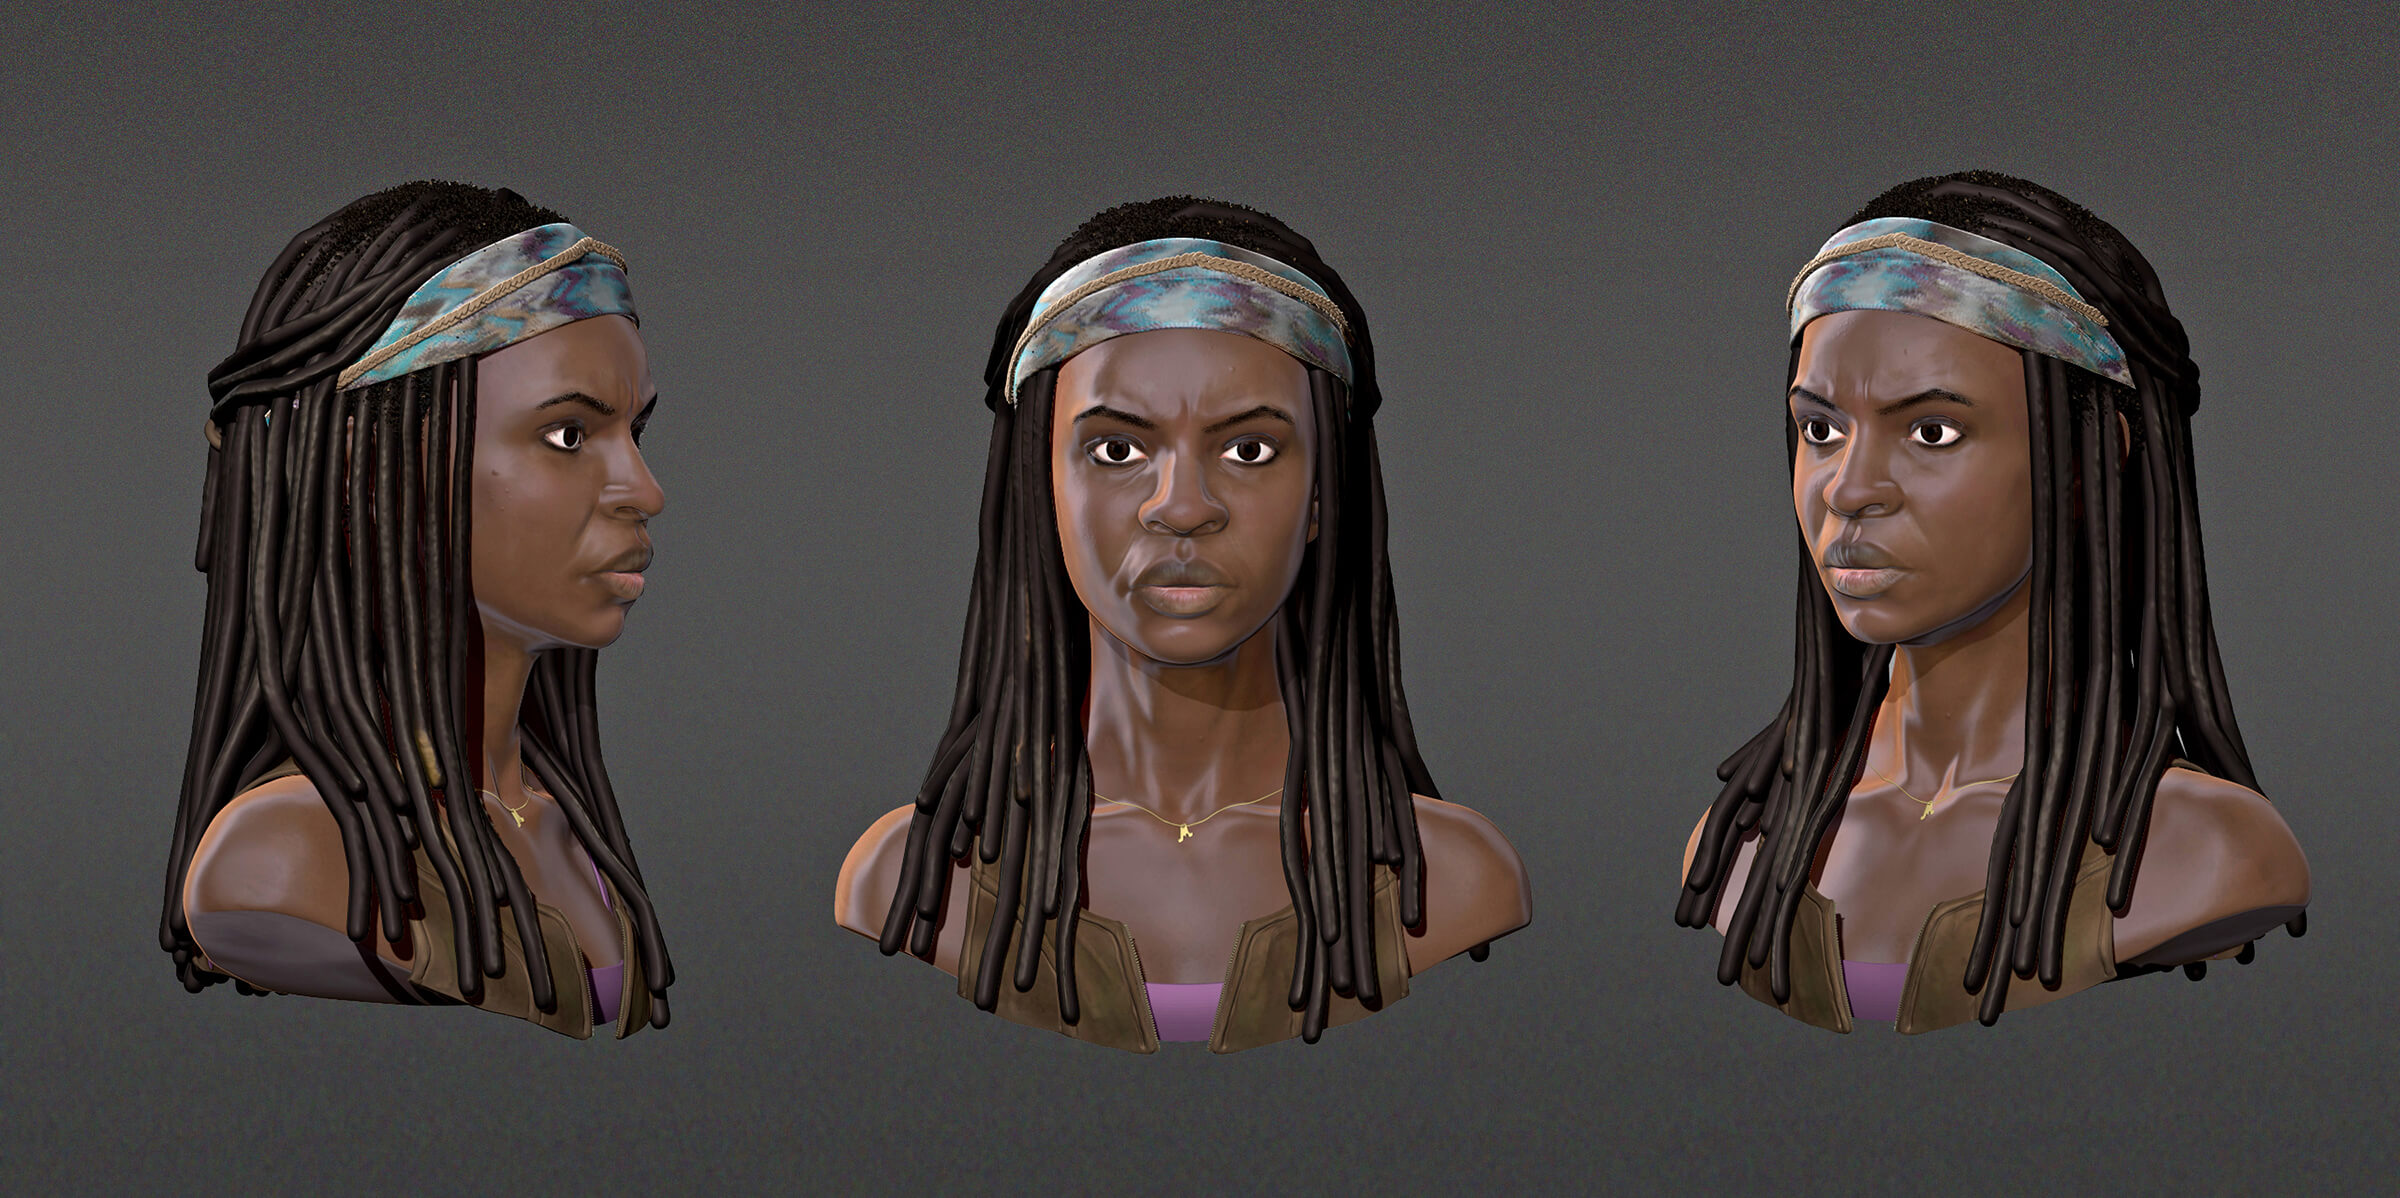 computer-generated 3D model of a fierce-looking black woman with 3 views - profile, head-on and partial profile